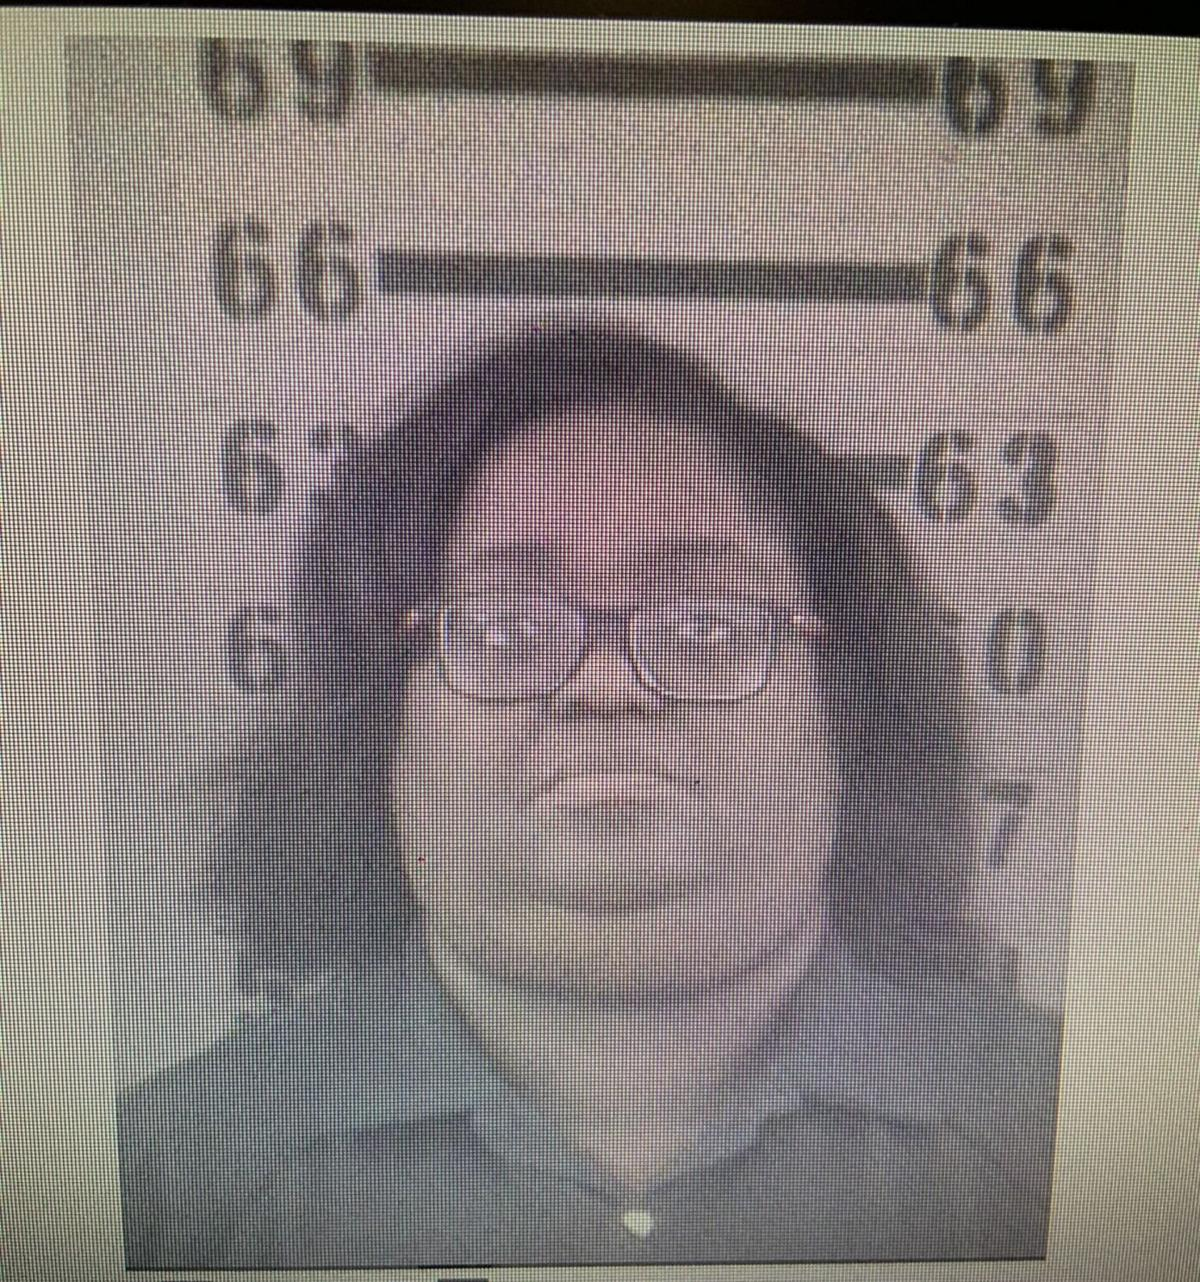 Dougherty County parents accused of locking boy in laundry room arrested